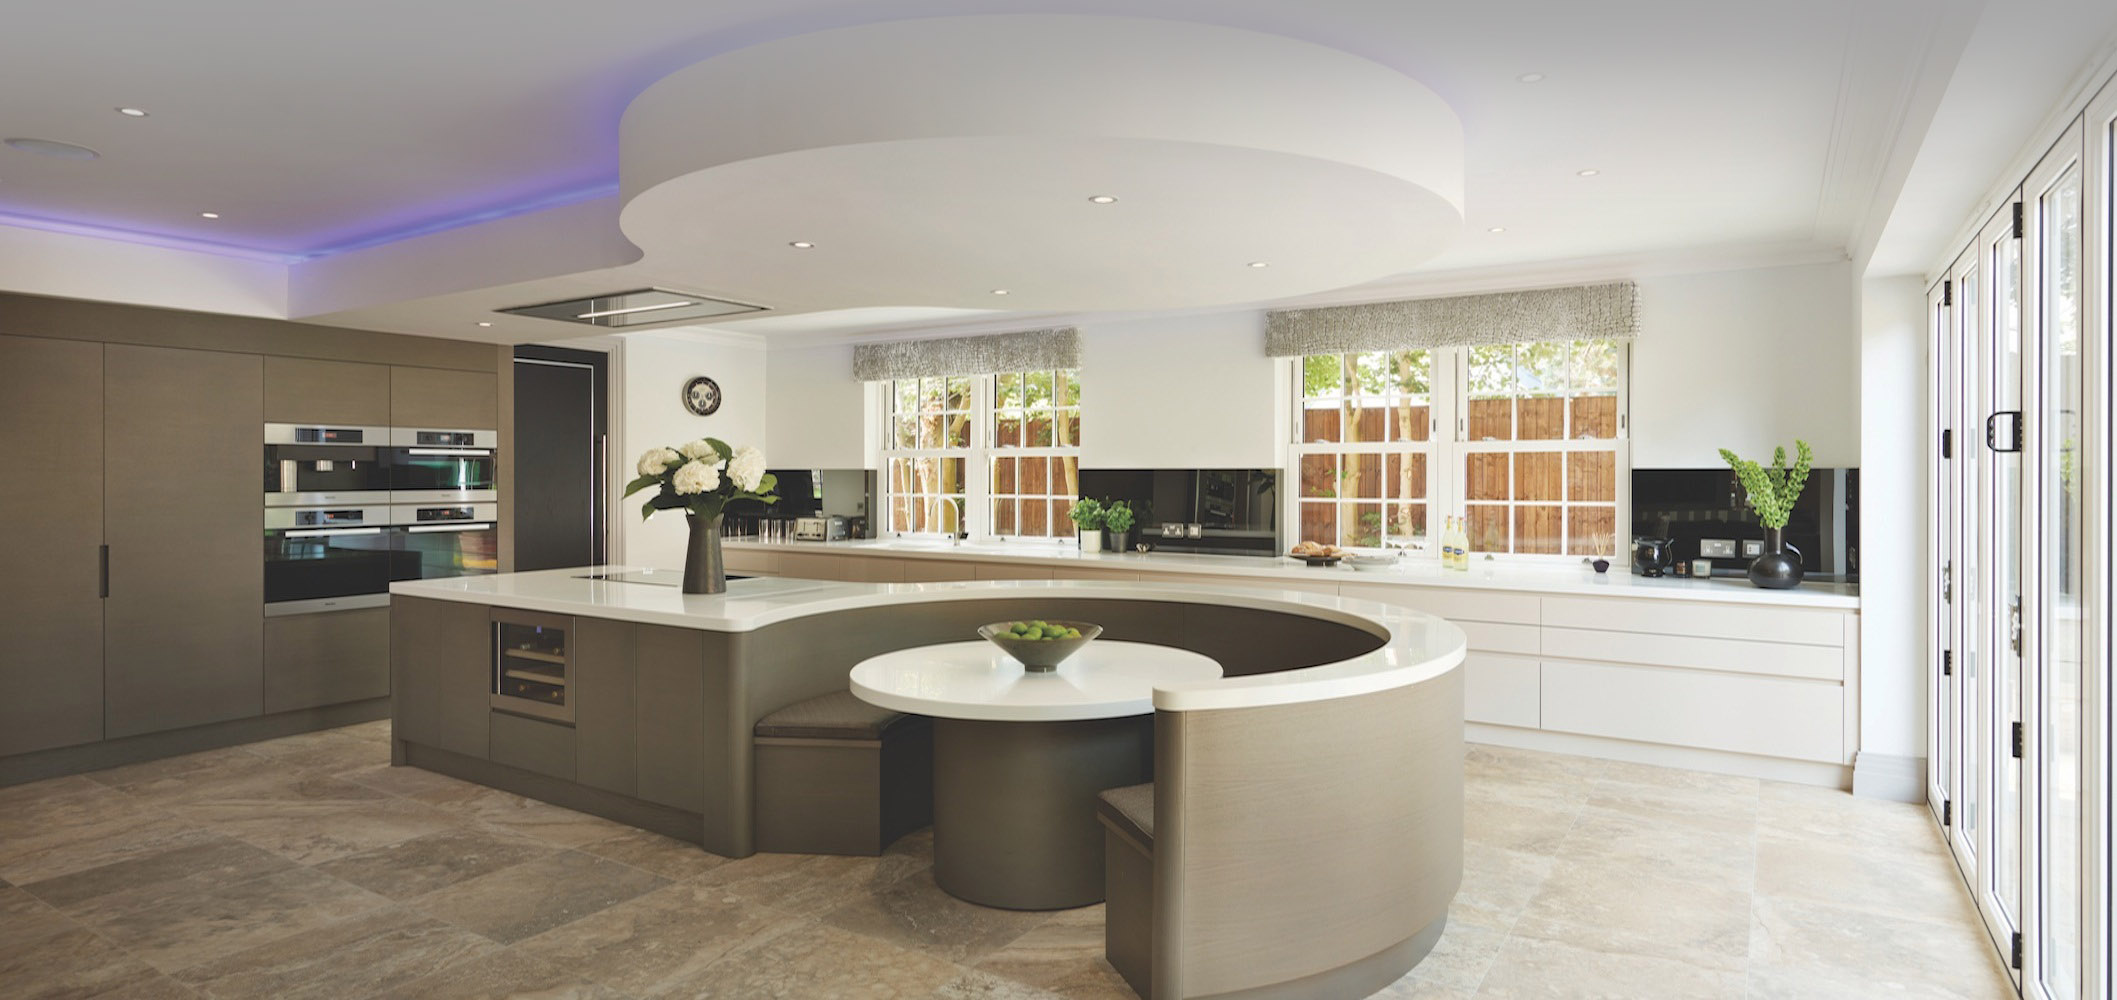 Ceiling hidden purple accent lights highlight ceiling detail mirroring the large island and circular dining booth in this large kitchen featuring light browns and whites on all surfaces.